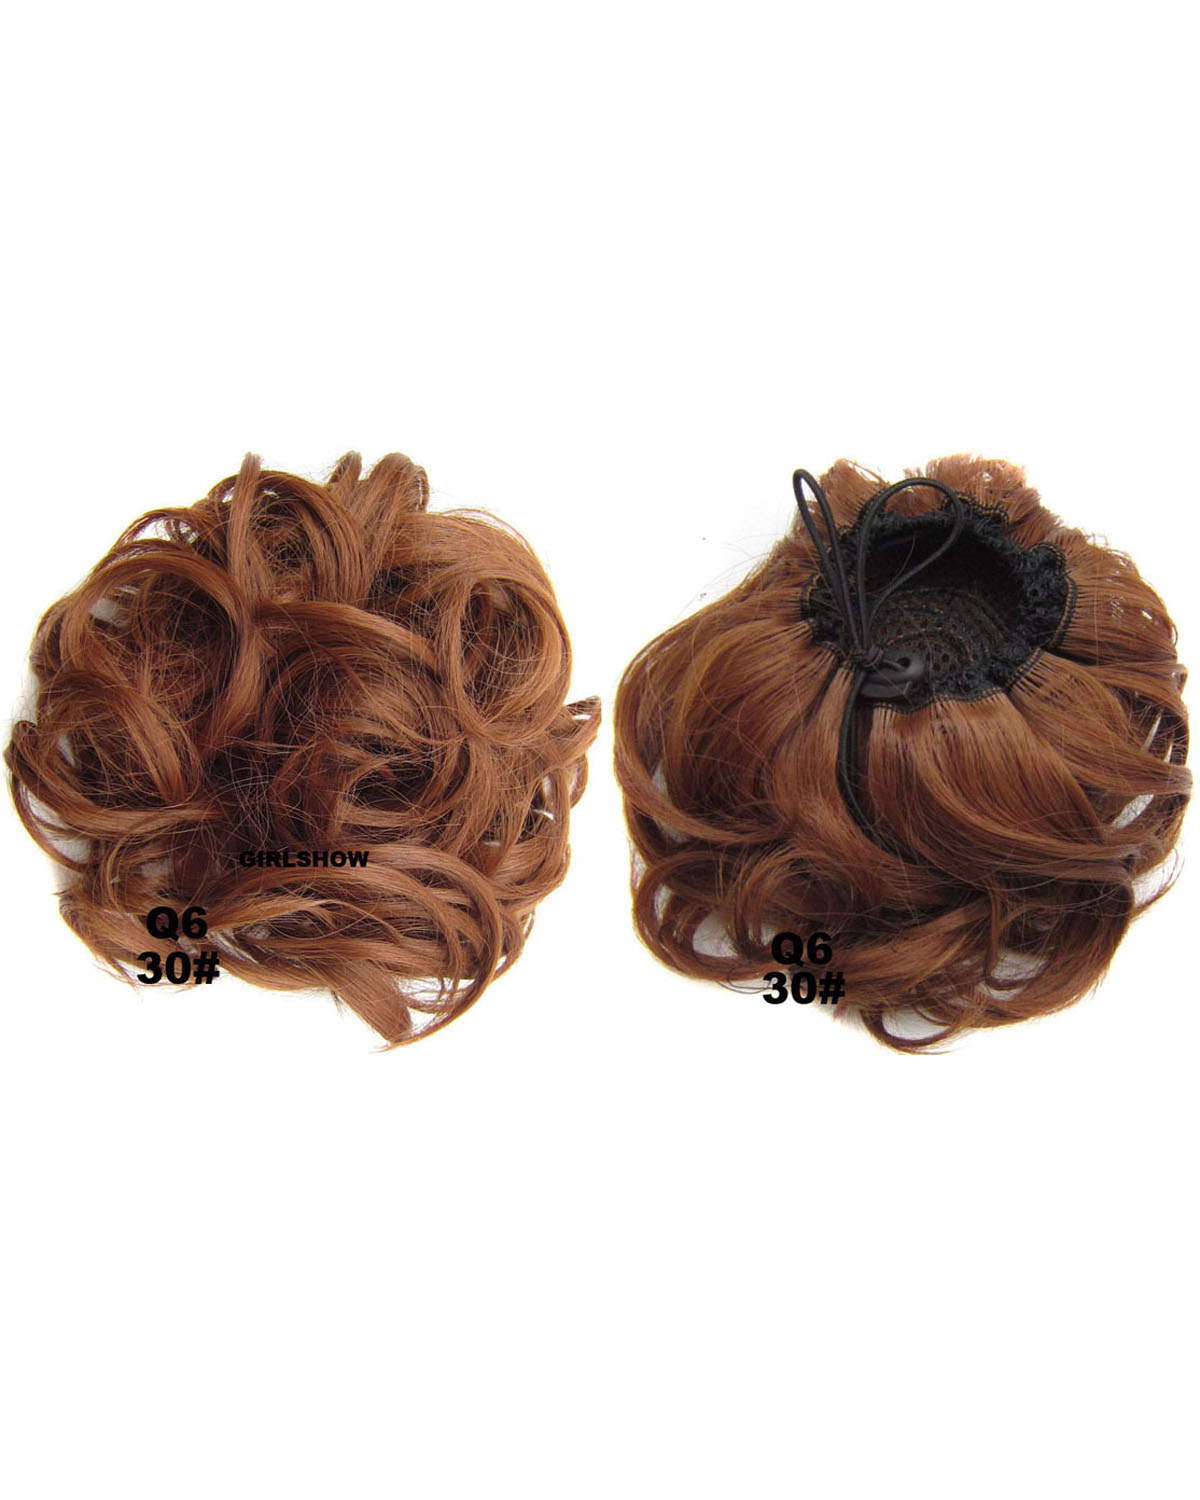 Ladies Sophisticated Curly and Short Hair Buns Drawstring Synthetic Hair Extension Bride Scrunchies  30#